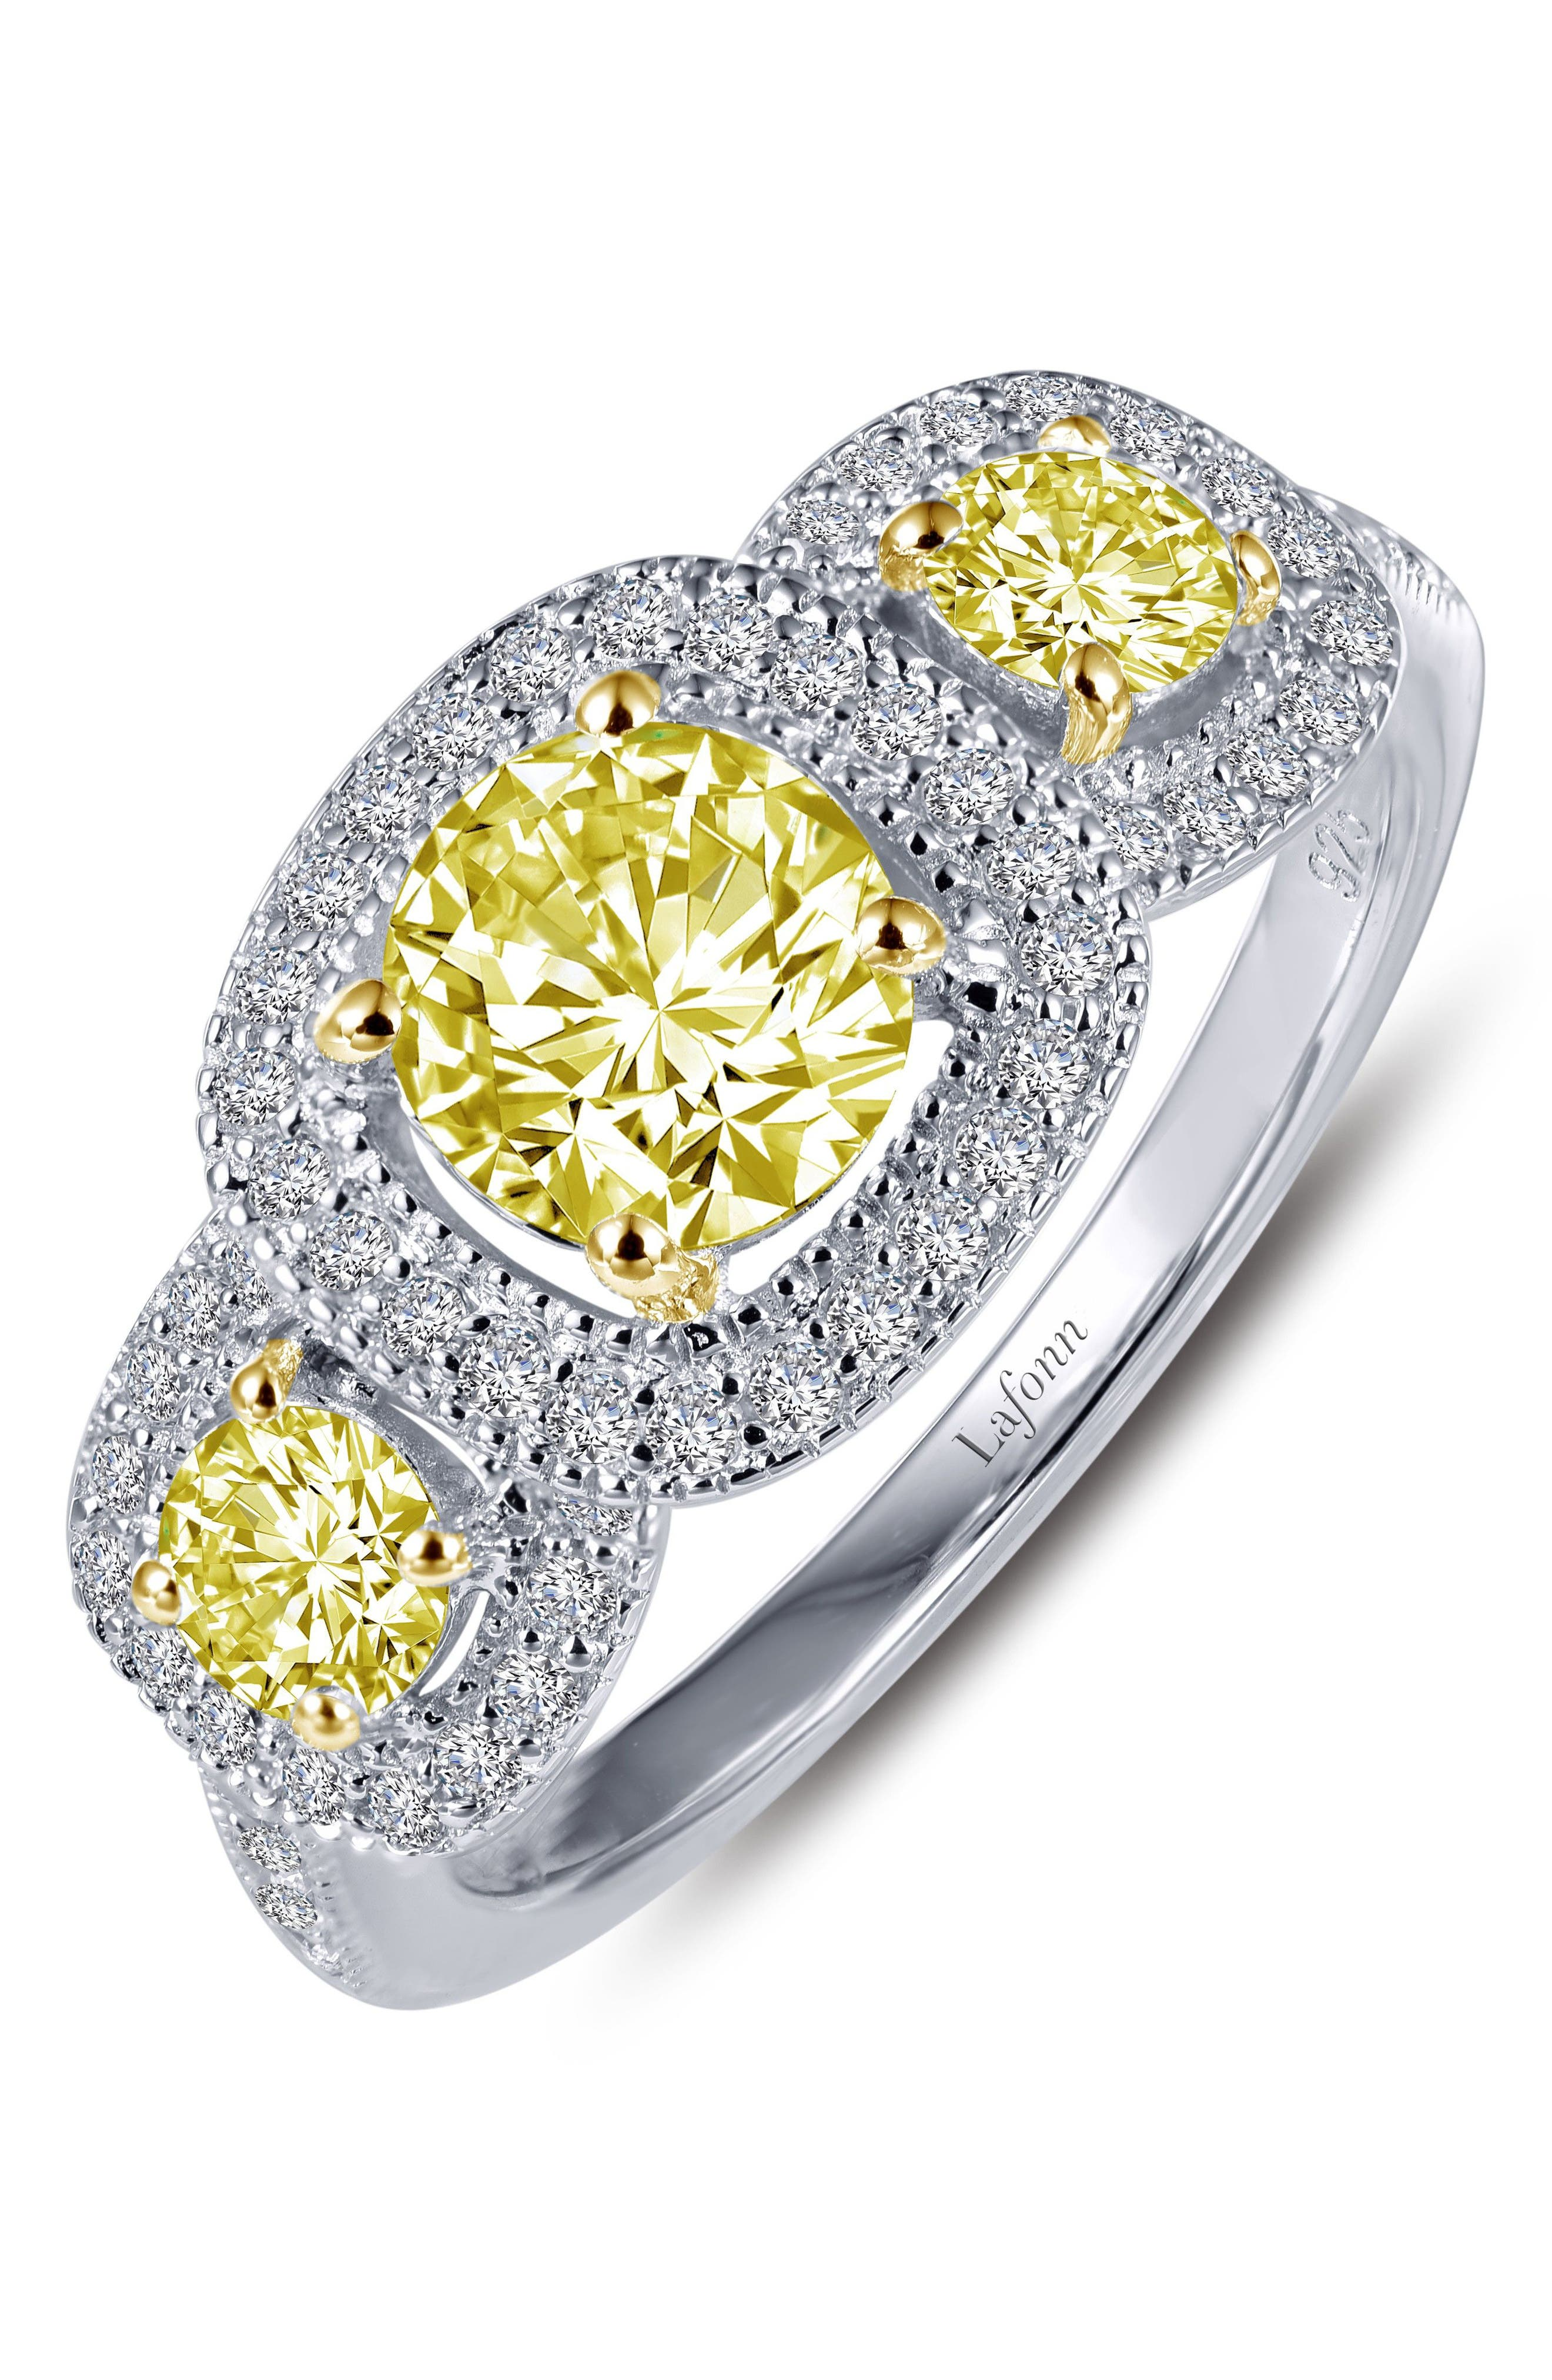 Simulated Diamond Halo Ring,                         Main,                         color, SILVER/ CANARY/ CLEAR